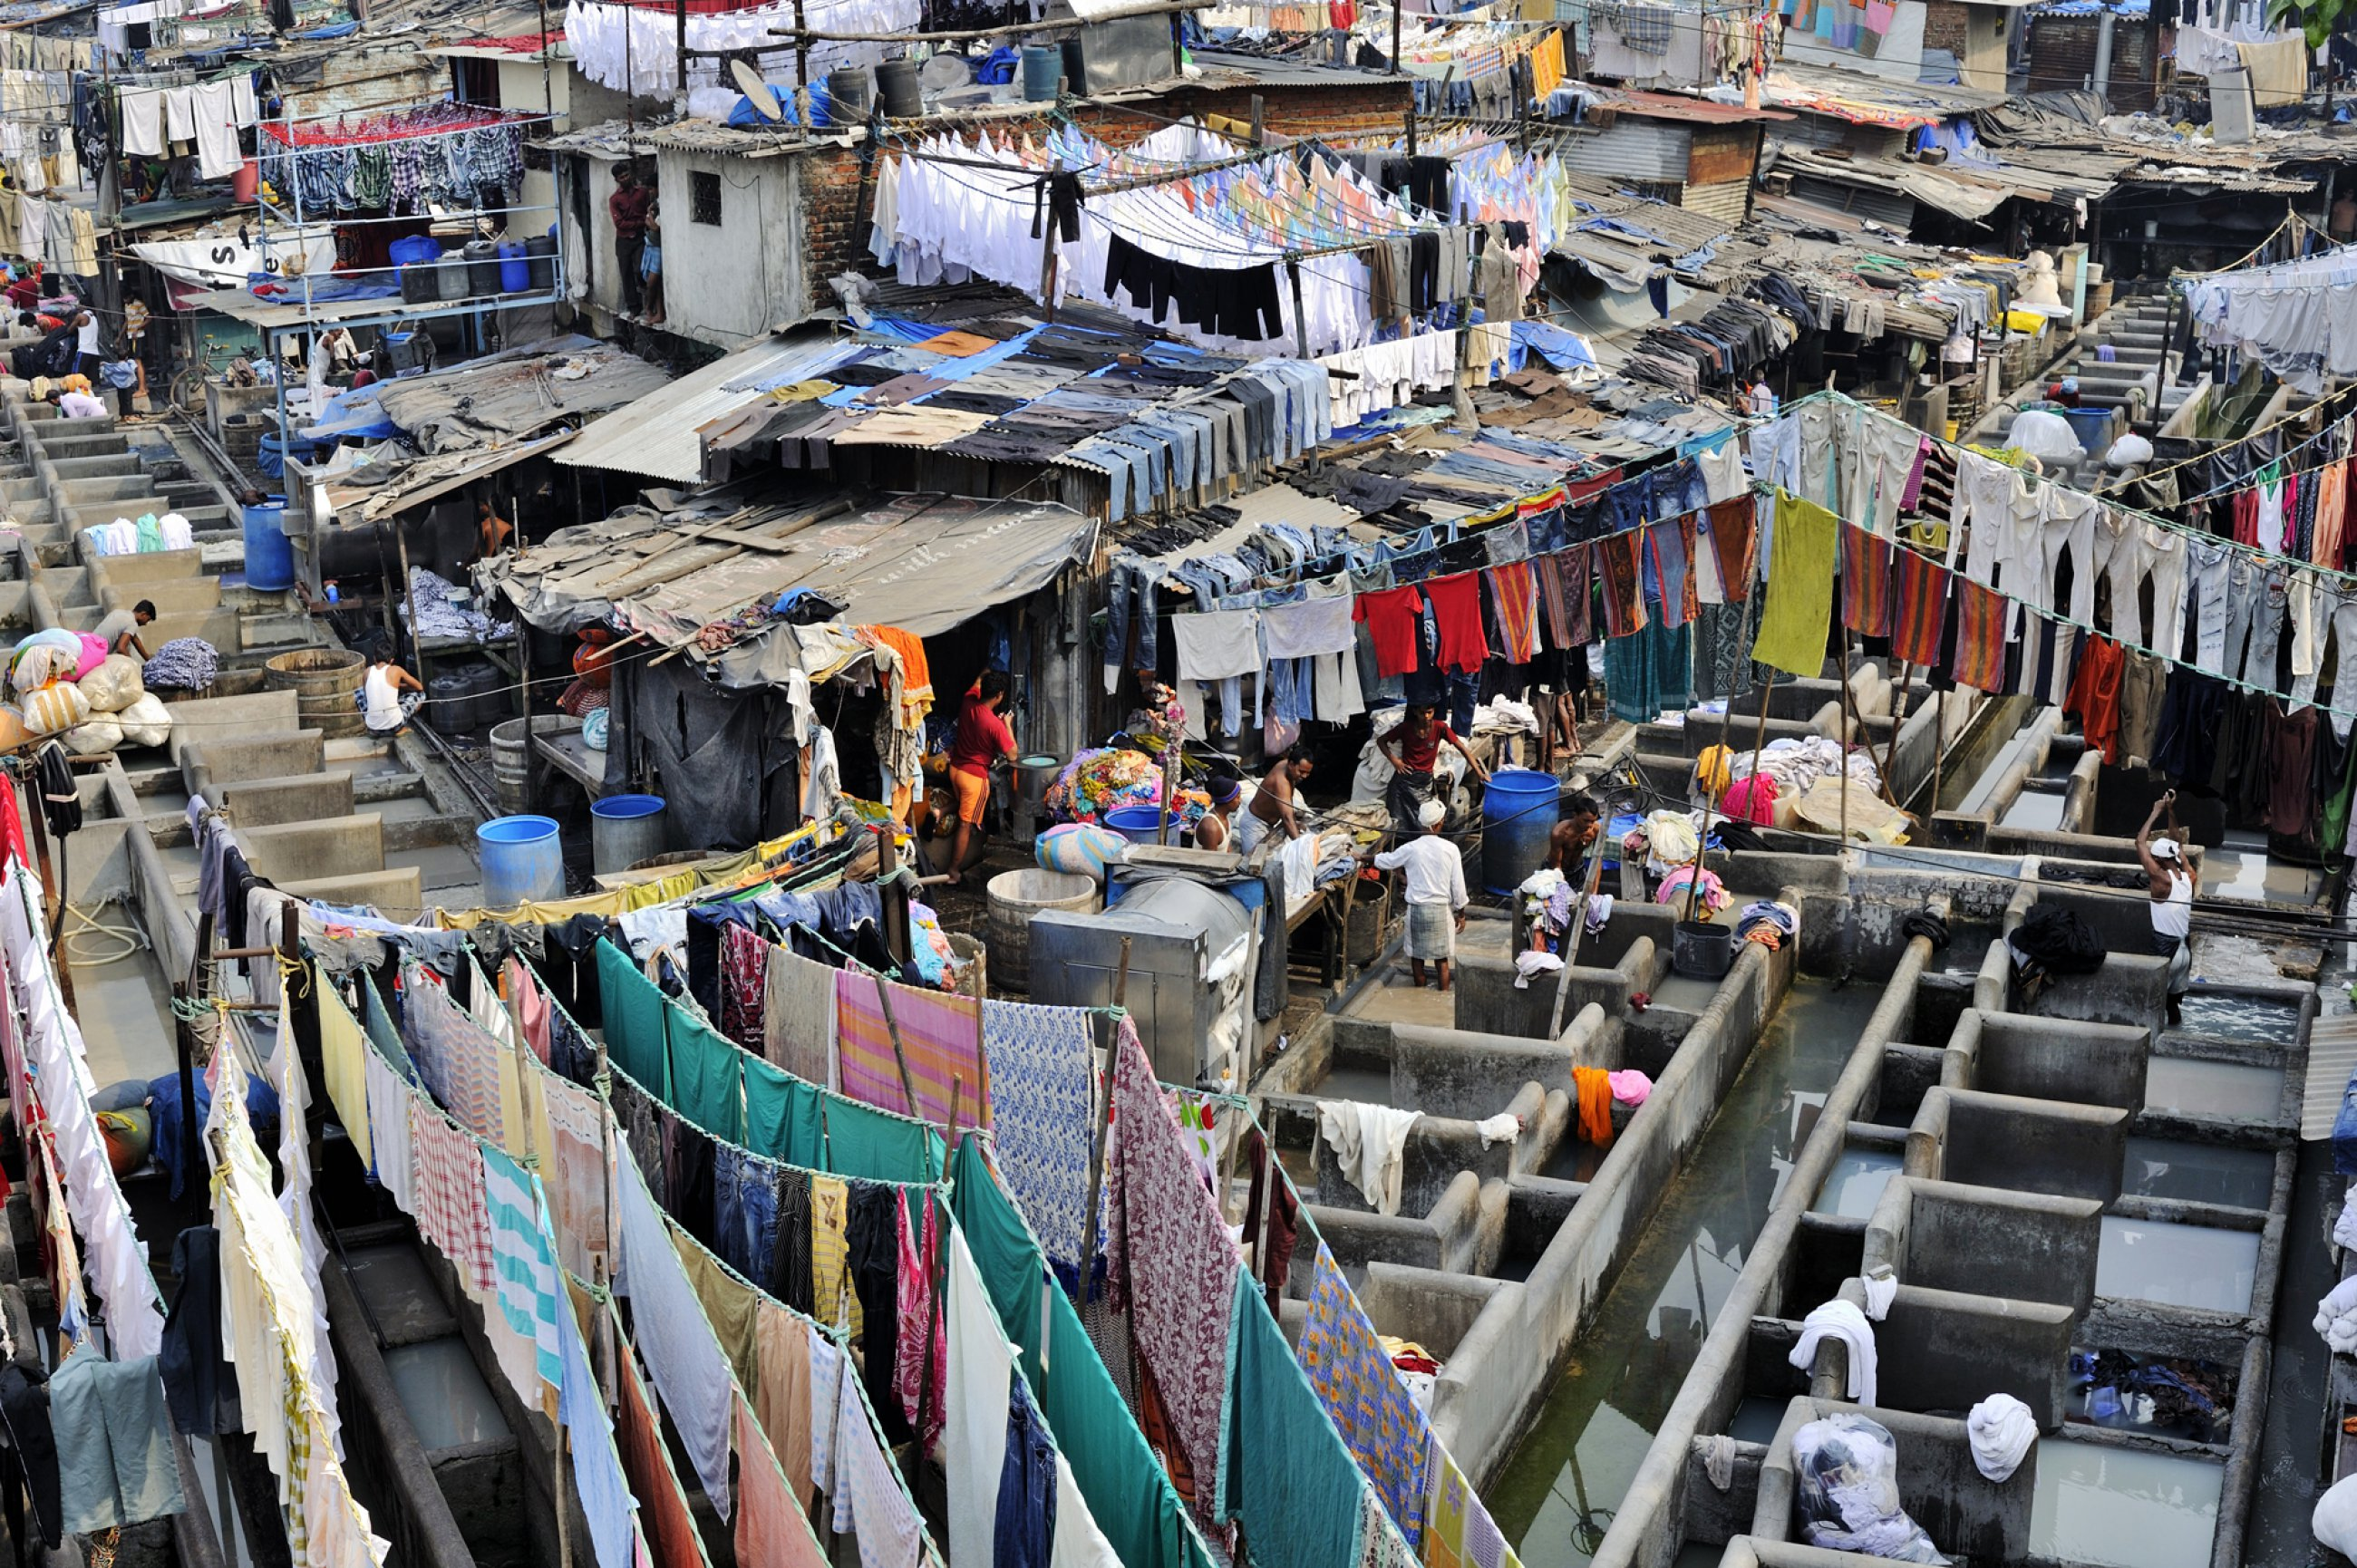 https://bubo.sk/uploads/galleries/4918/bombaj-dhobi-ghat-in-mumbai.jpg